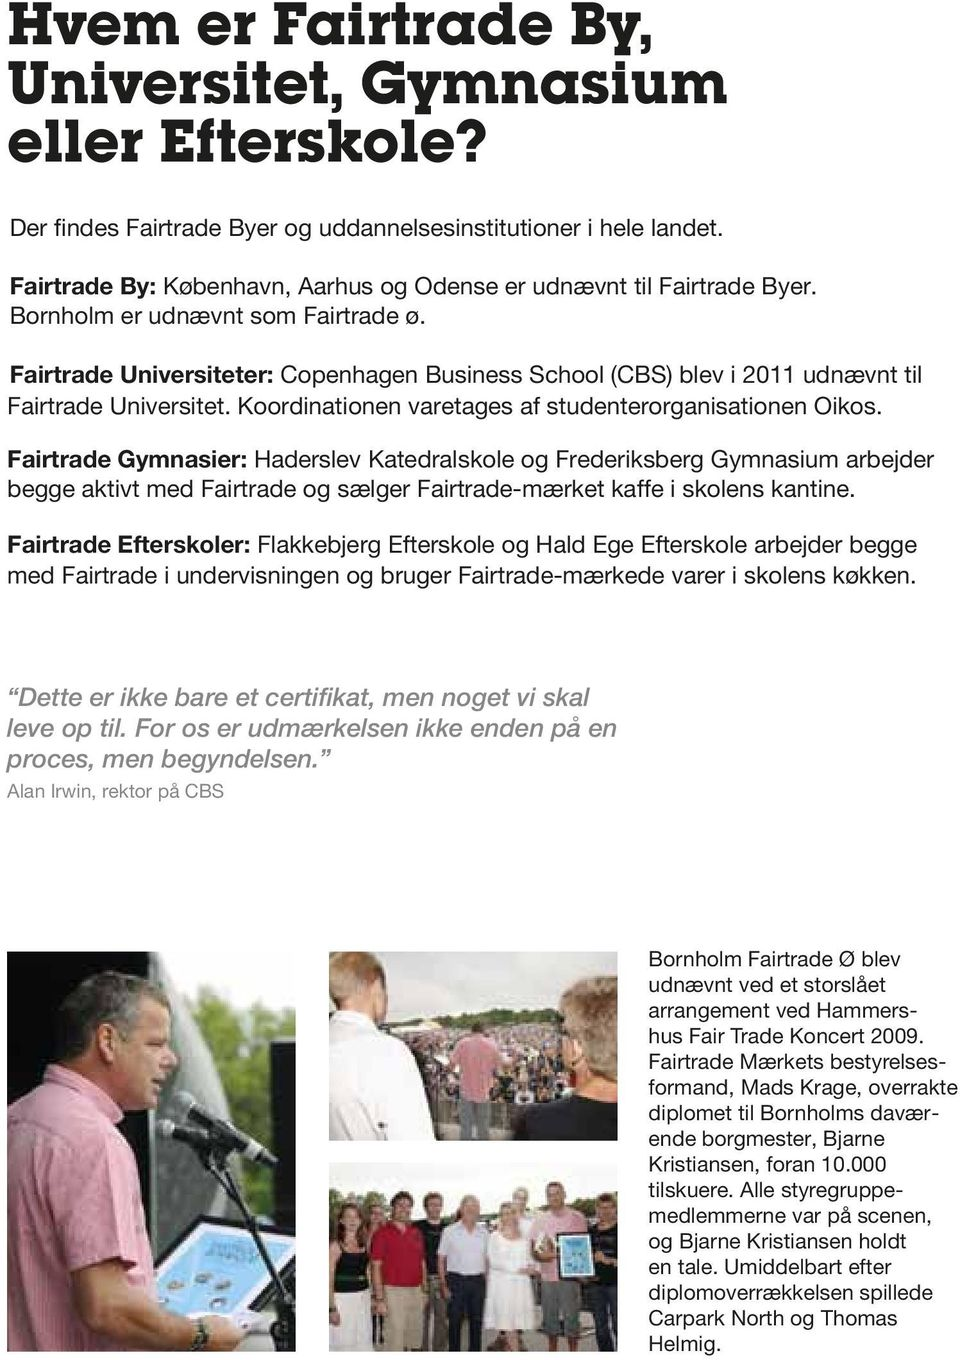 Fairtrade Universiteter: Copenhagen Business School (CBS) blev i 2011 udnævnt til Fairtrade Universitet. Koordinationen varetages af studenterorganisationen Oikos.